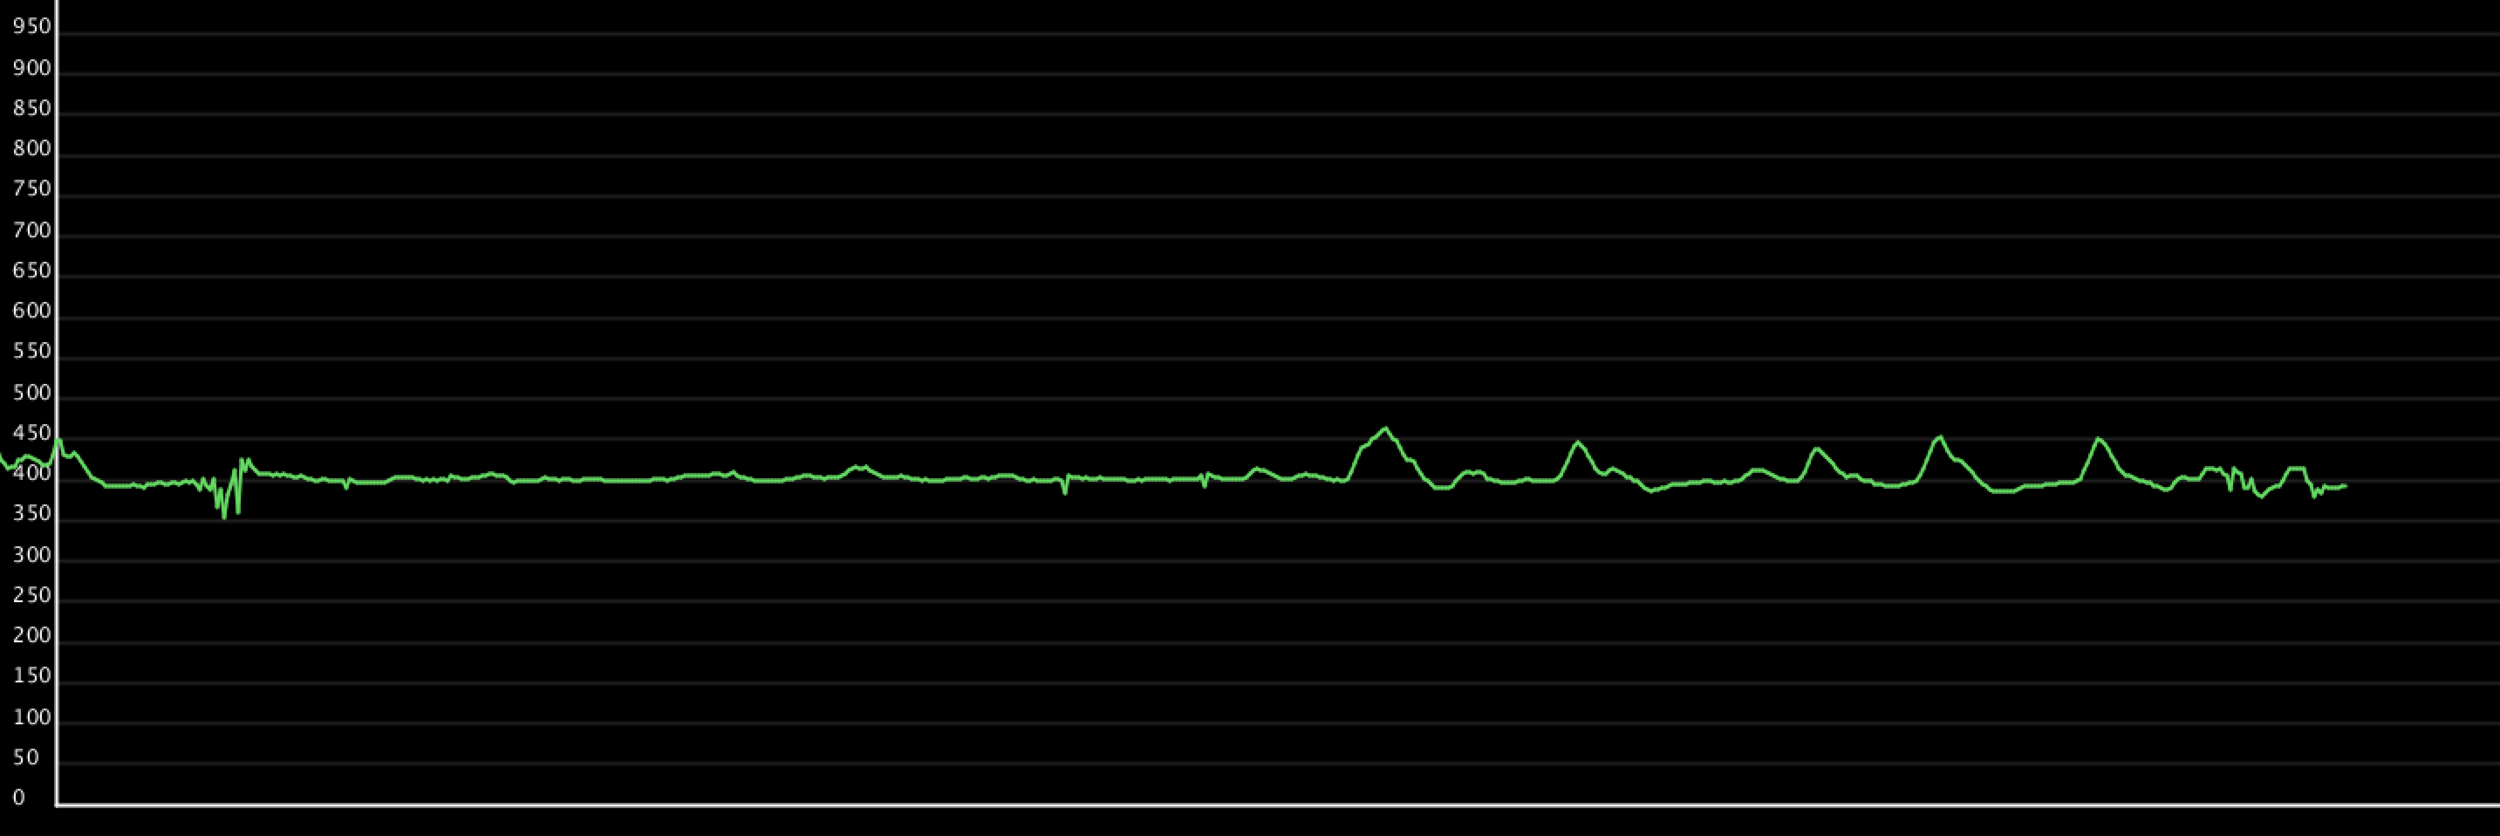 Discovered that heavy breathing, in particular exhaling, will cause peeks on the graph as well.